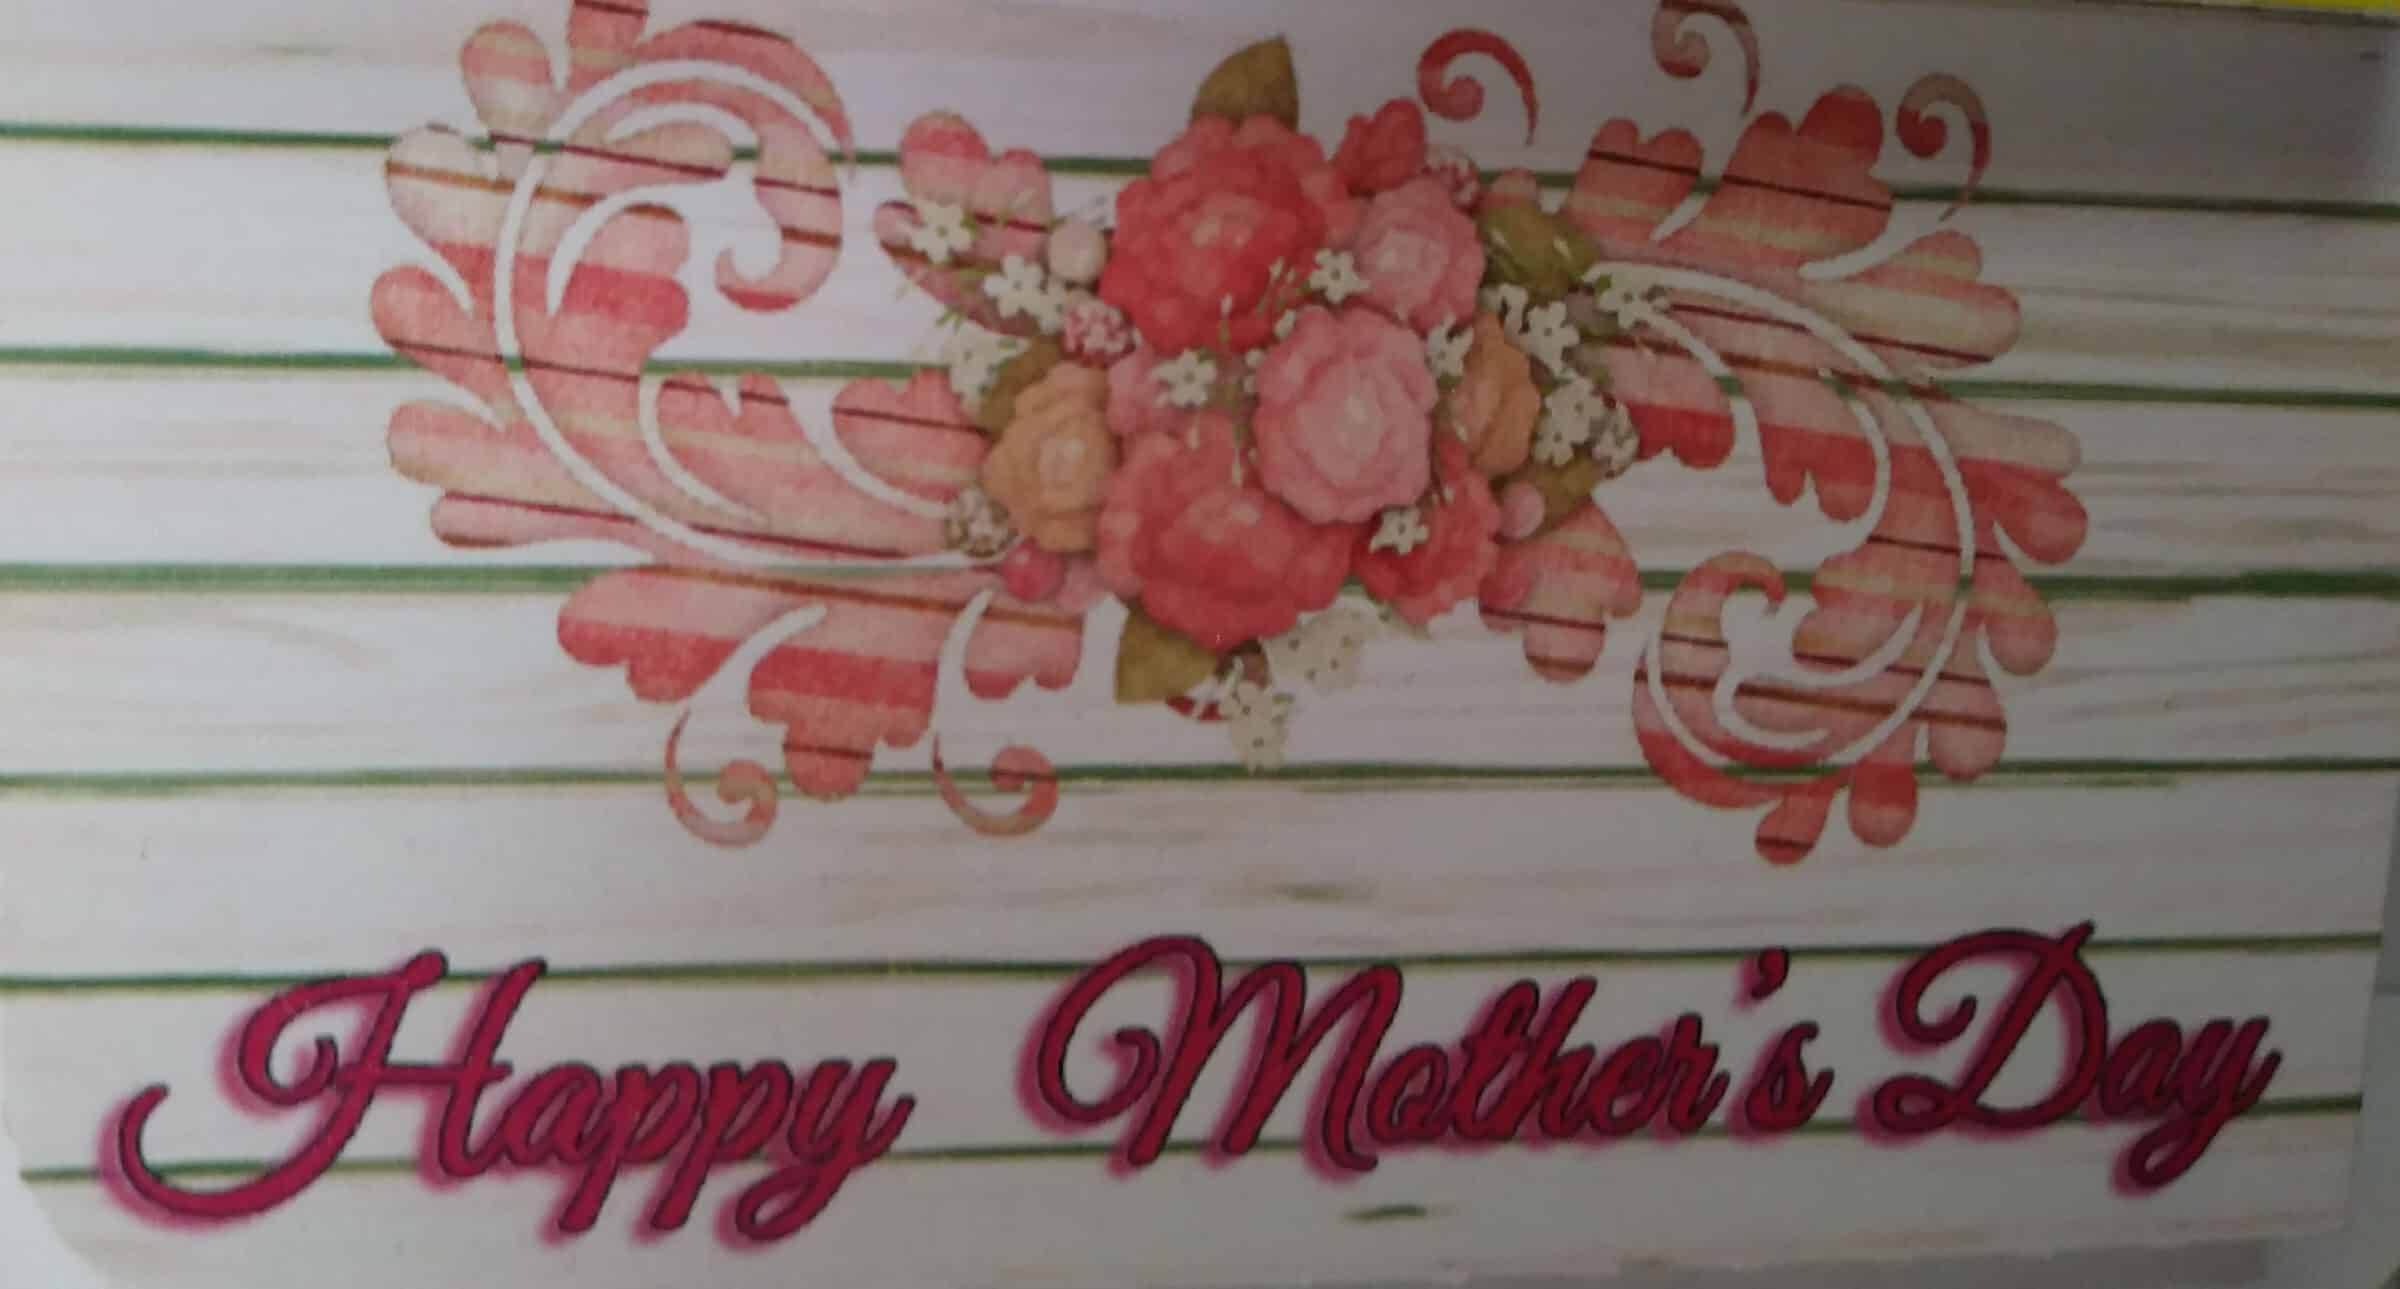 Mothers Day Cakes and Cookies Featured Image